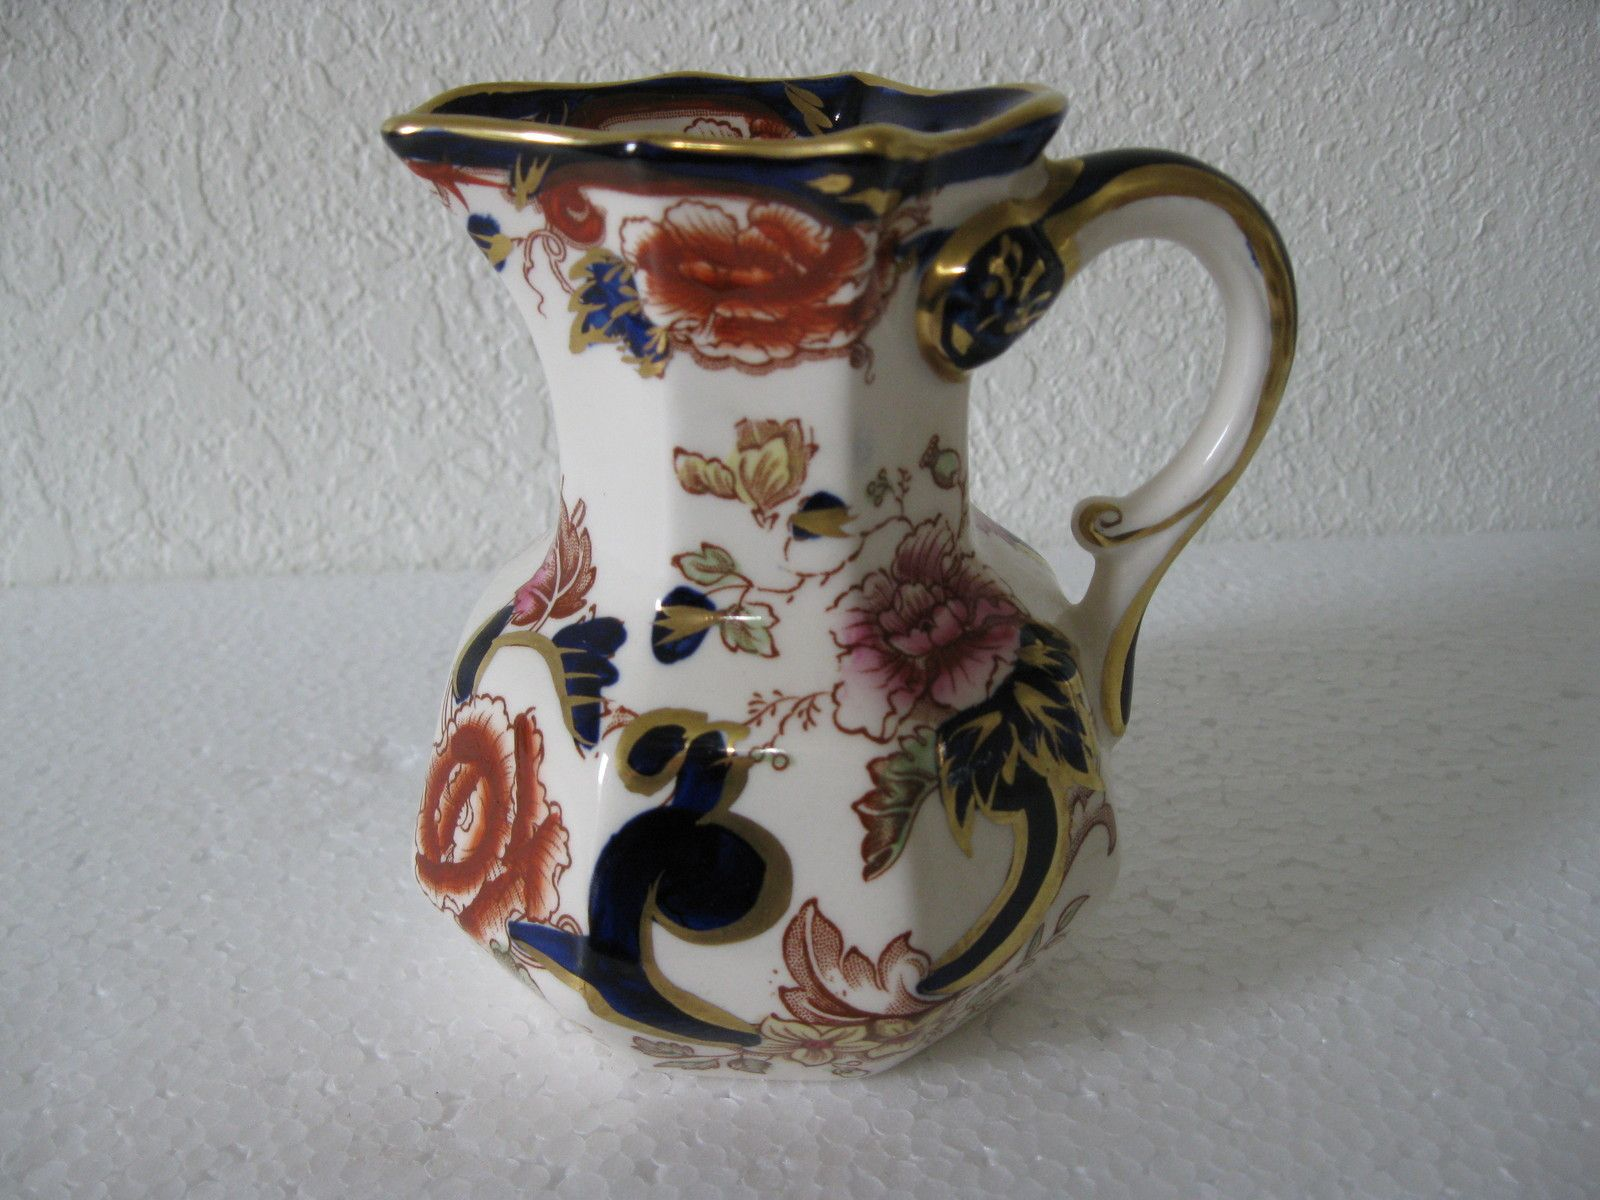 Antique Masons Ironstone China Pitcher Mandalay Pattern Exc Condition Price Cut Ebay Sort It